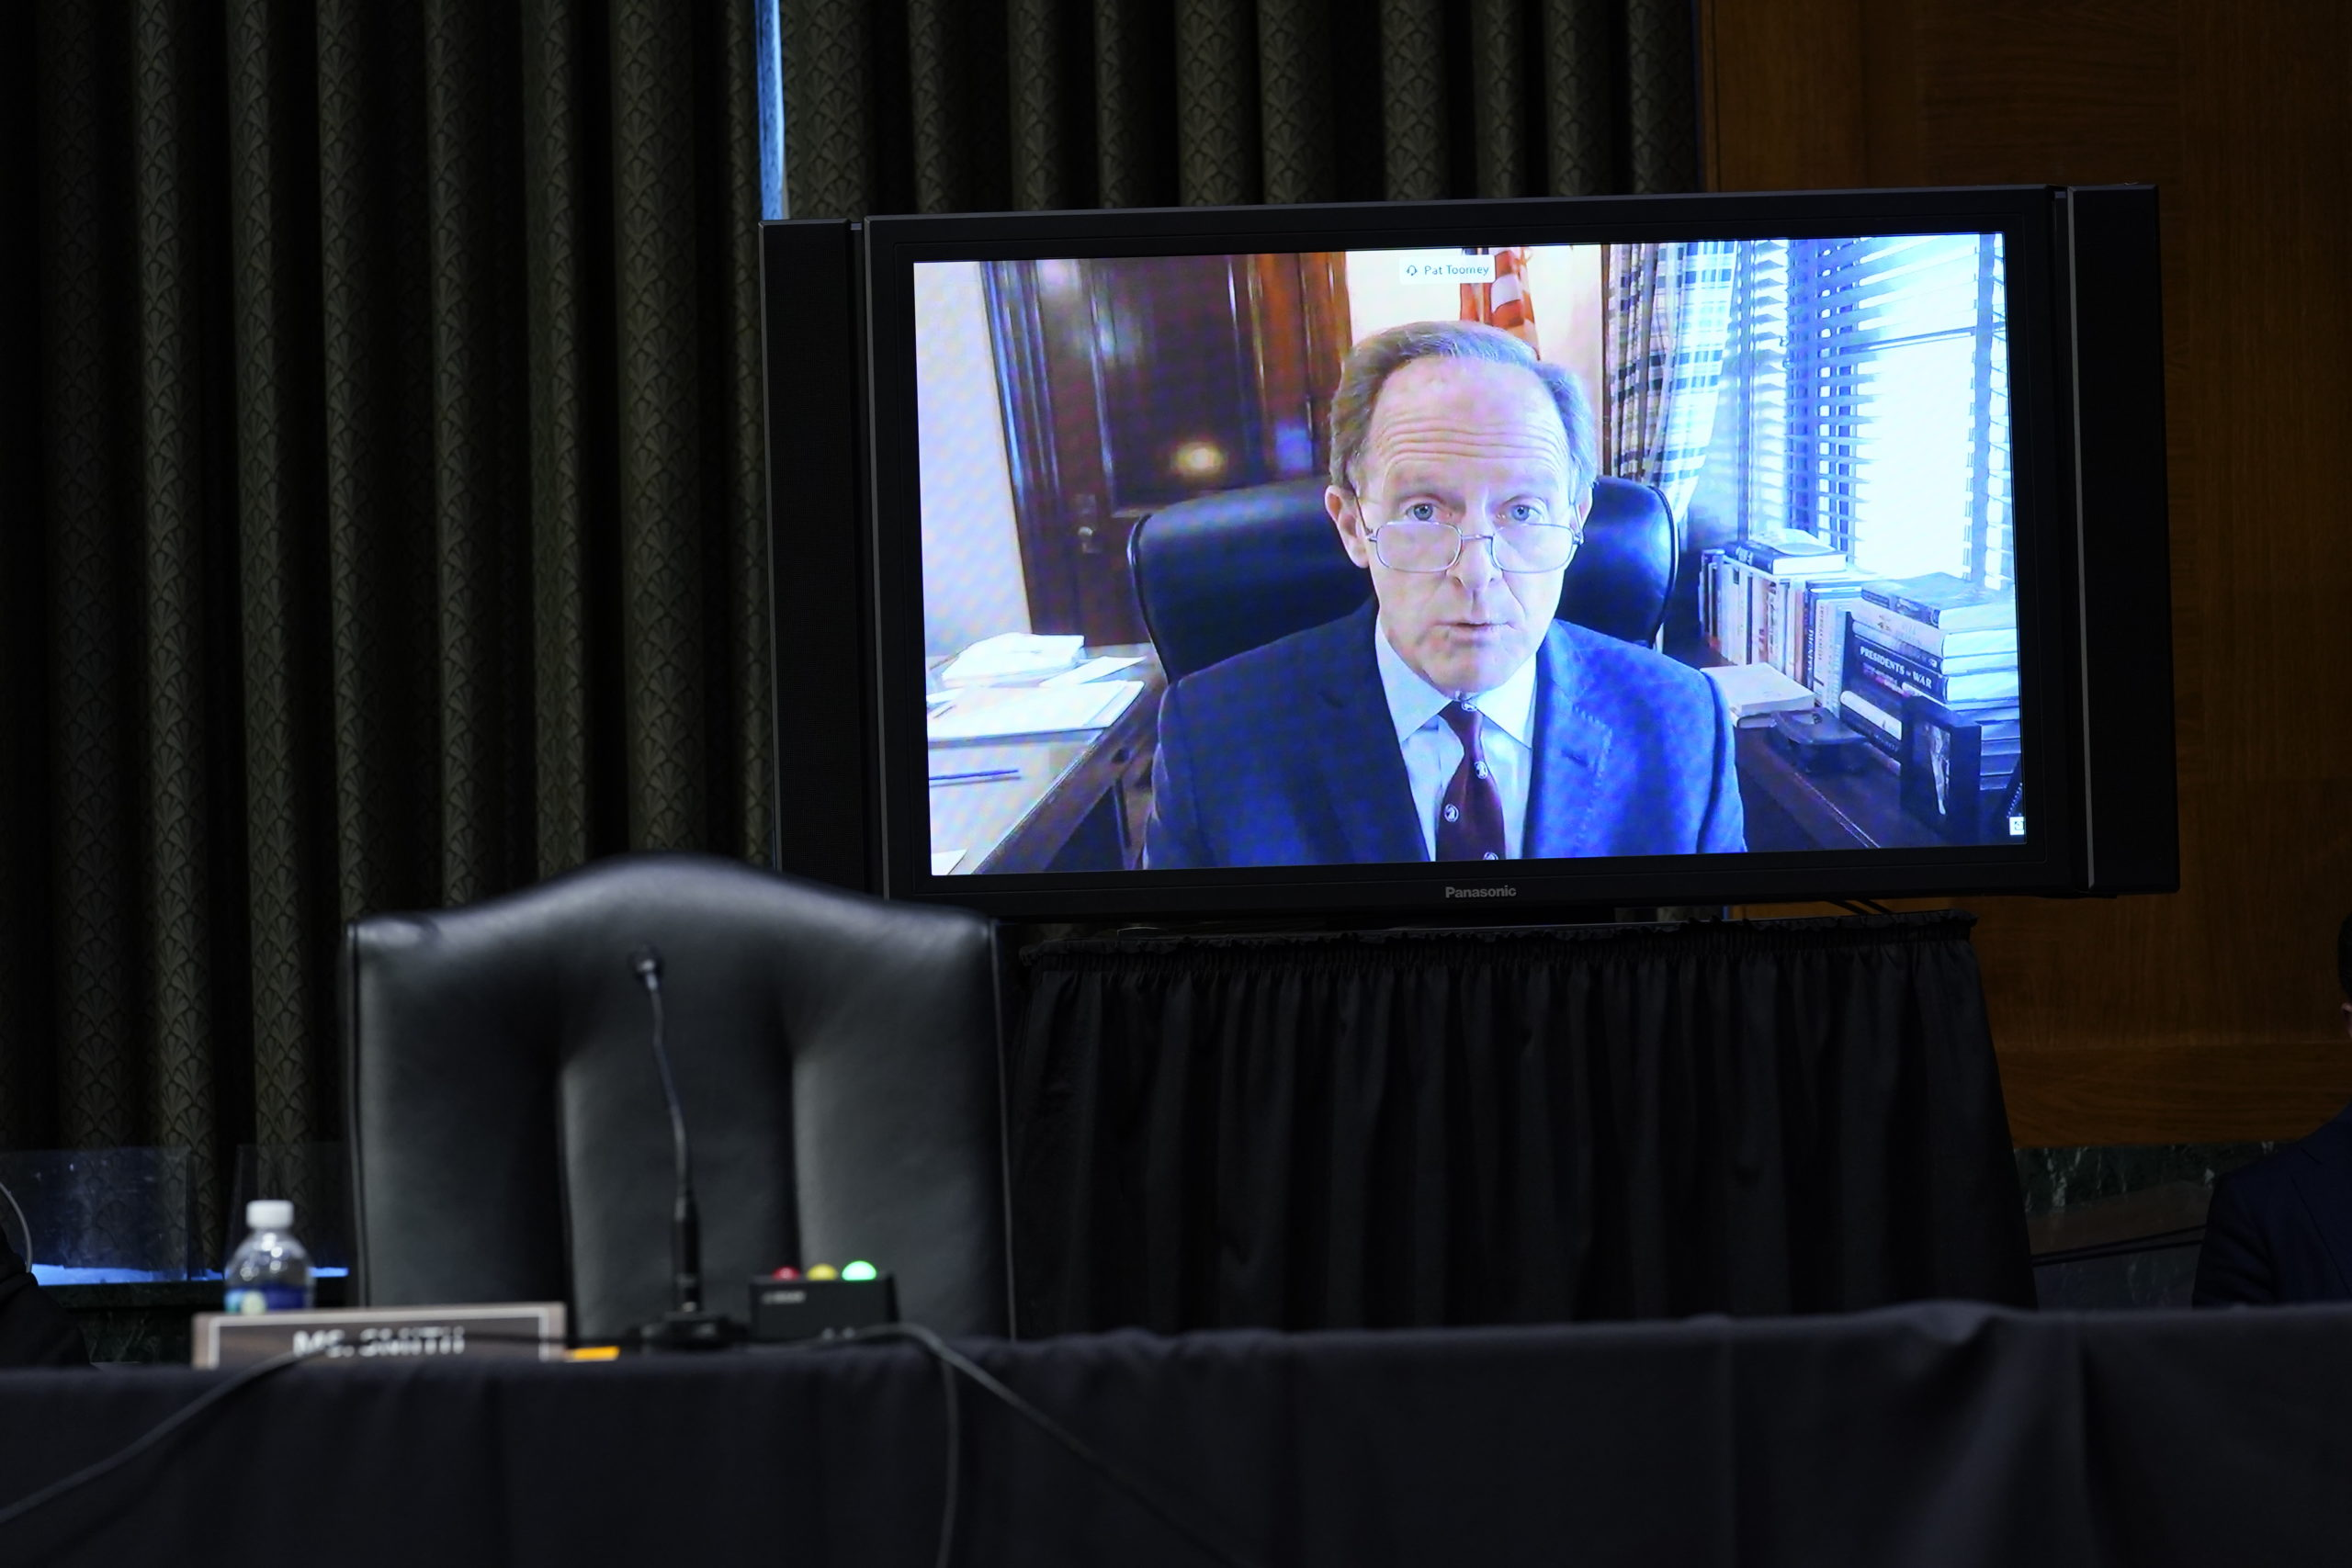 Sen. Pat Toomey speaks via video conference during a Senate Banking Committee hearing with Federal Reserve Chair Jerome Powell in December. (Susan Walsh/Pool/Getty Images)